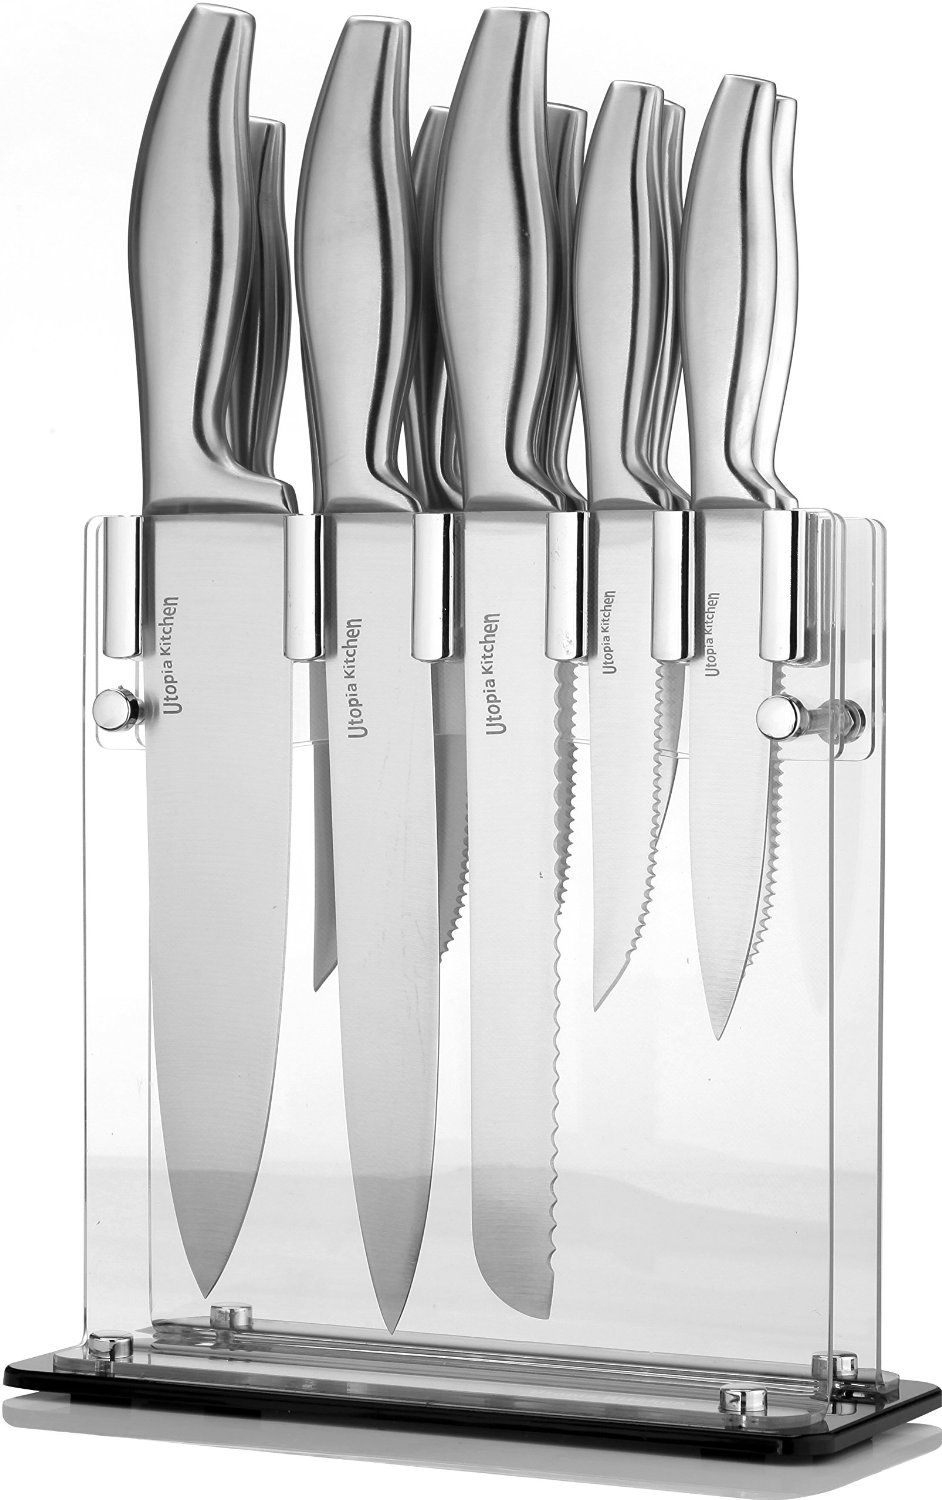 Amazon.com: Premium Class Stainless-Steel Kitchen 12 Knife-Set with ...